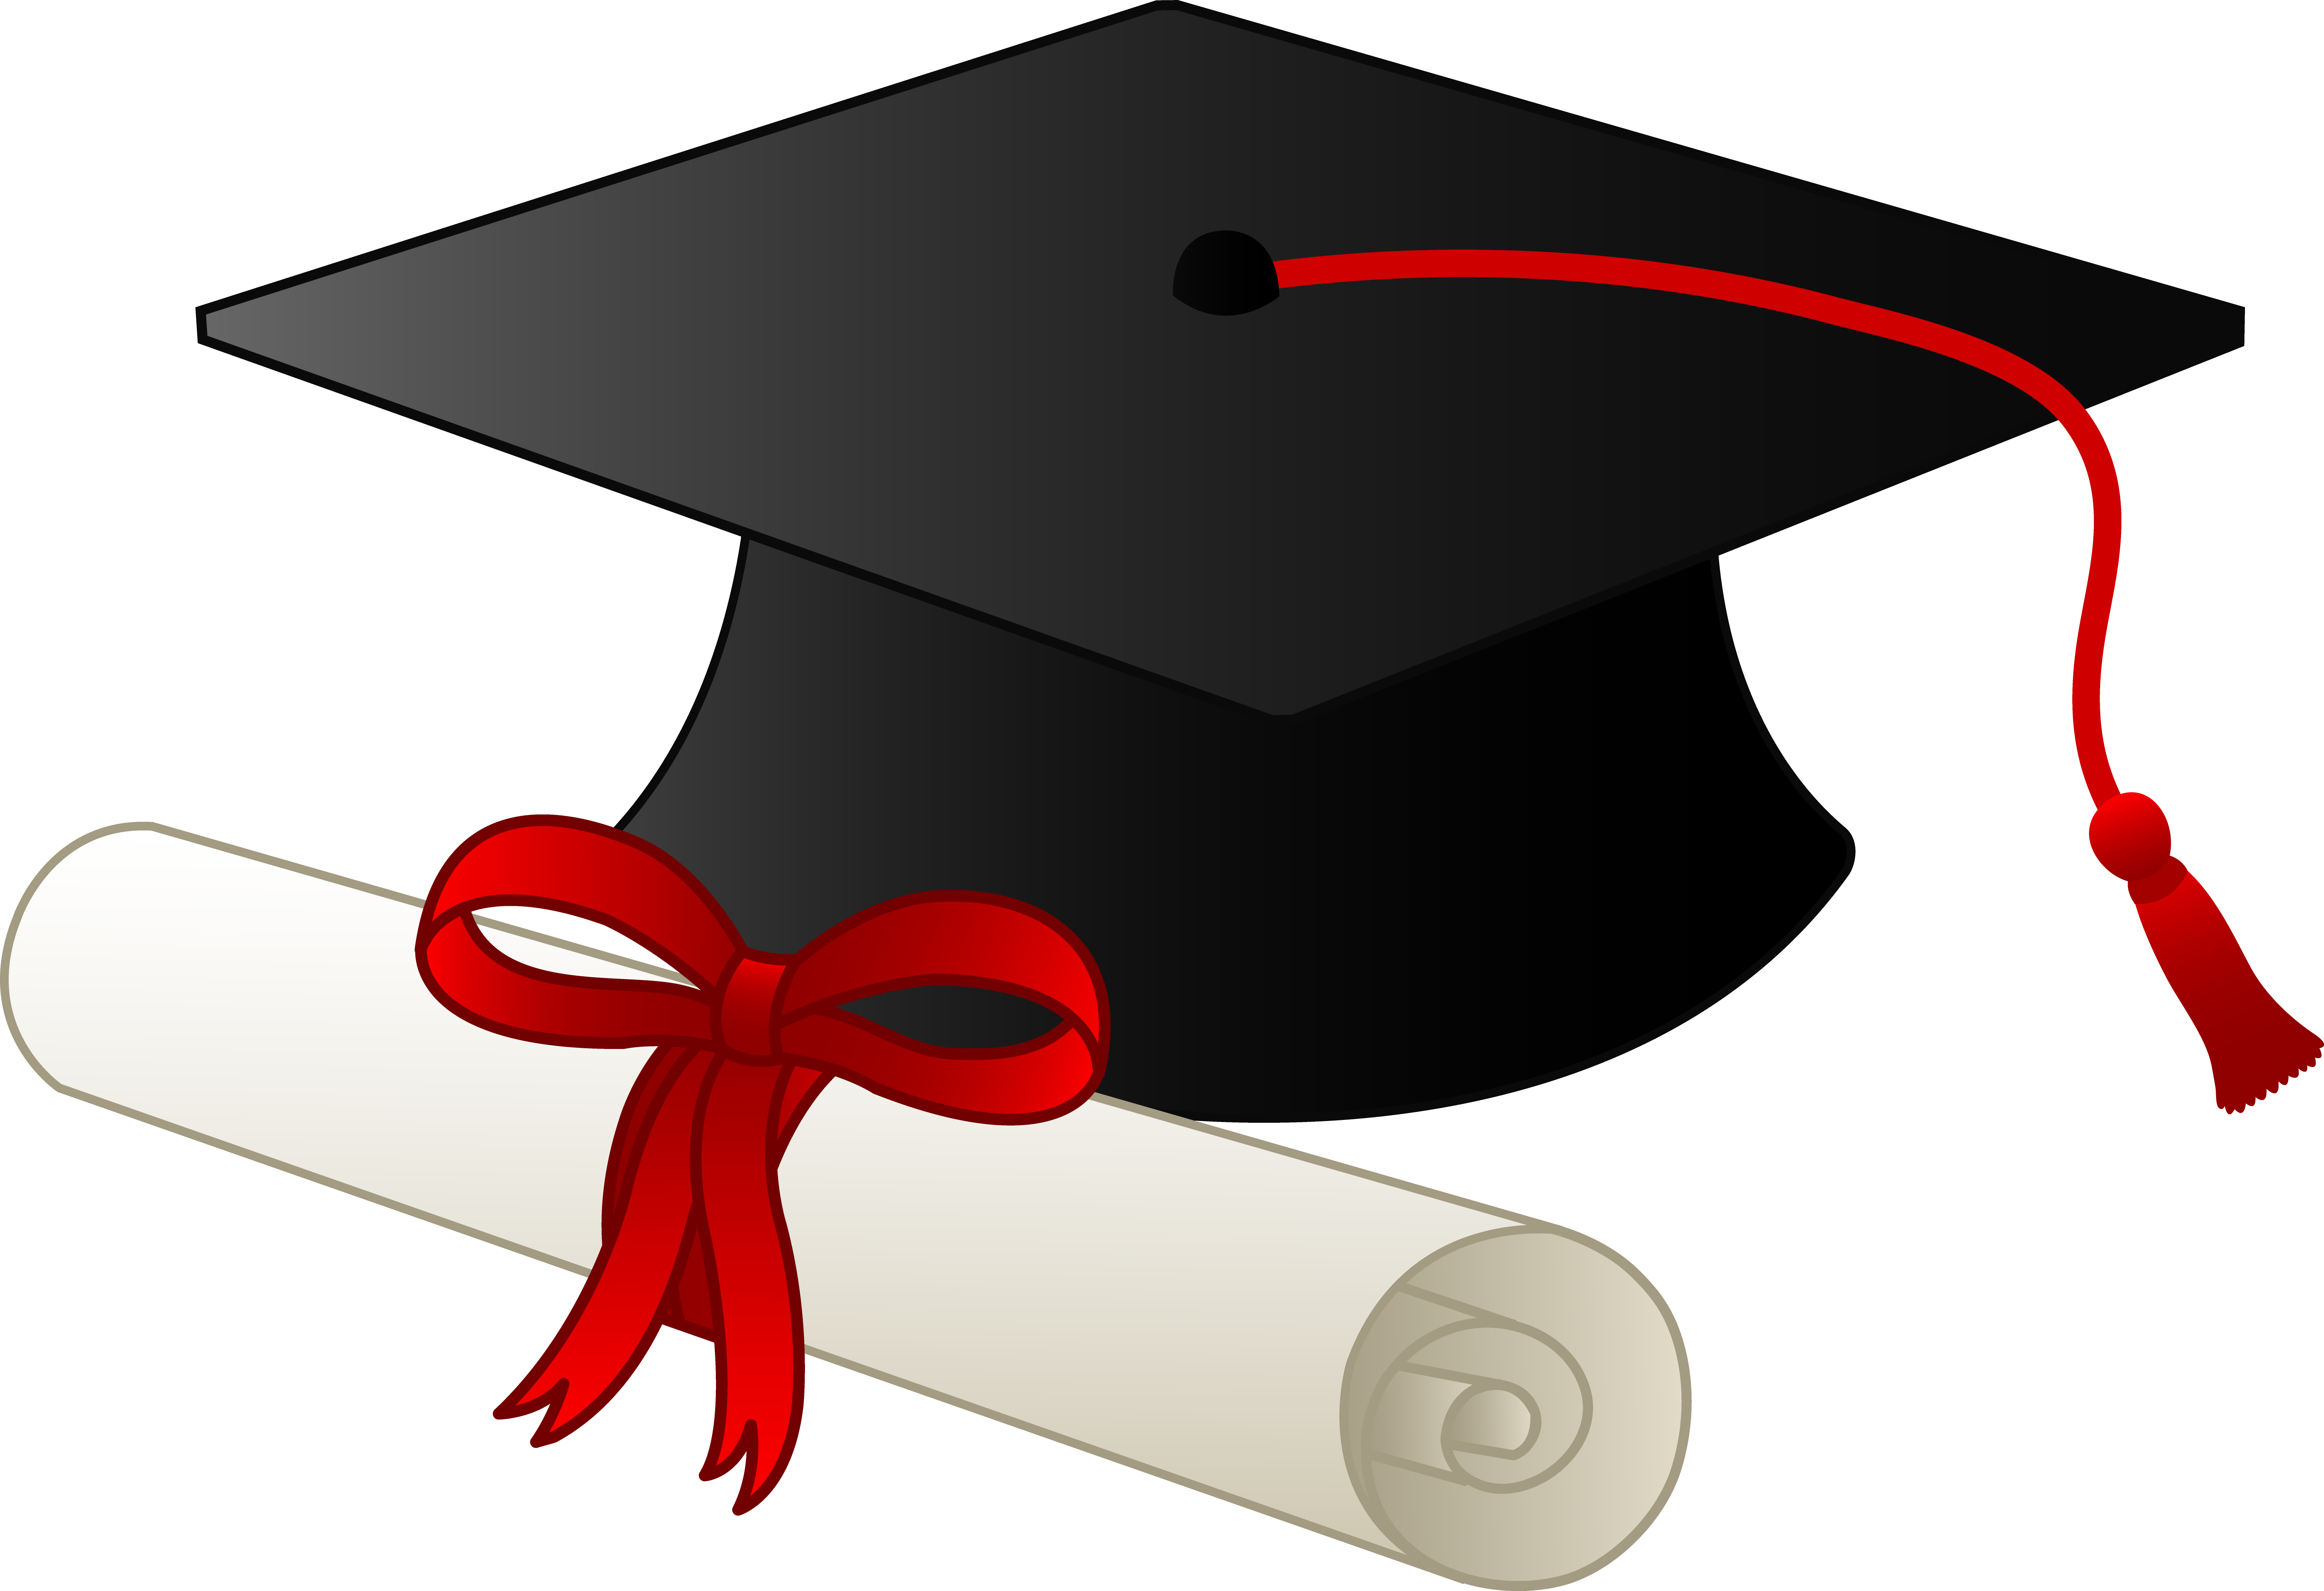 1000  ideas about Graduation Cap Clipart on Pinterest   Decorated graduation caps, Graduation caps and Graduation gifts